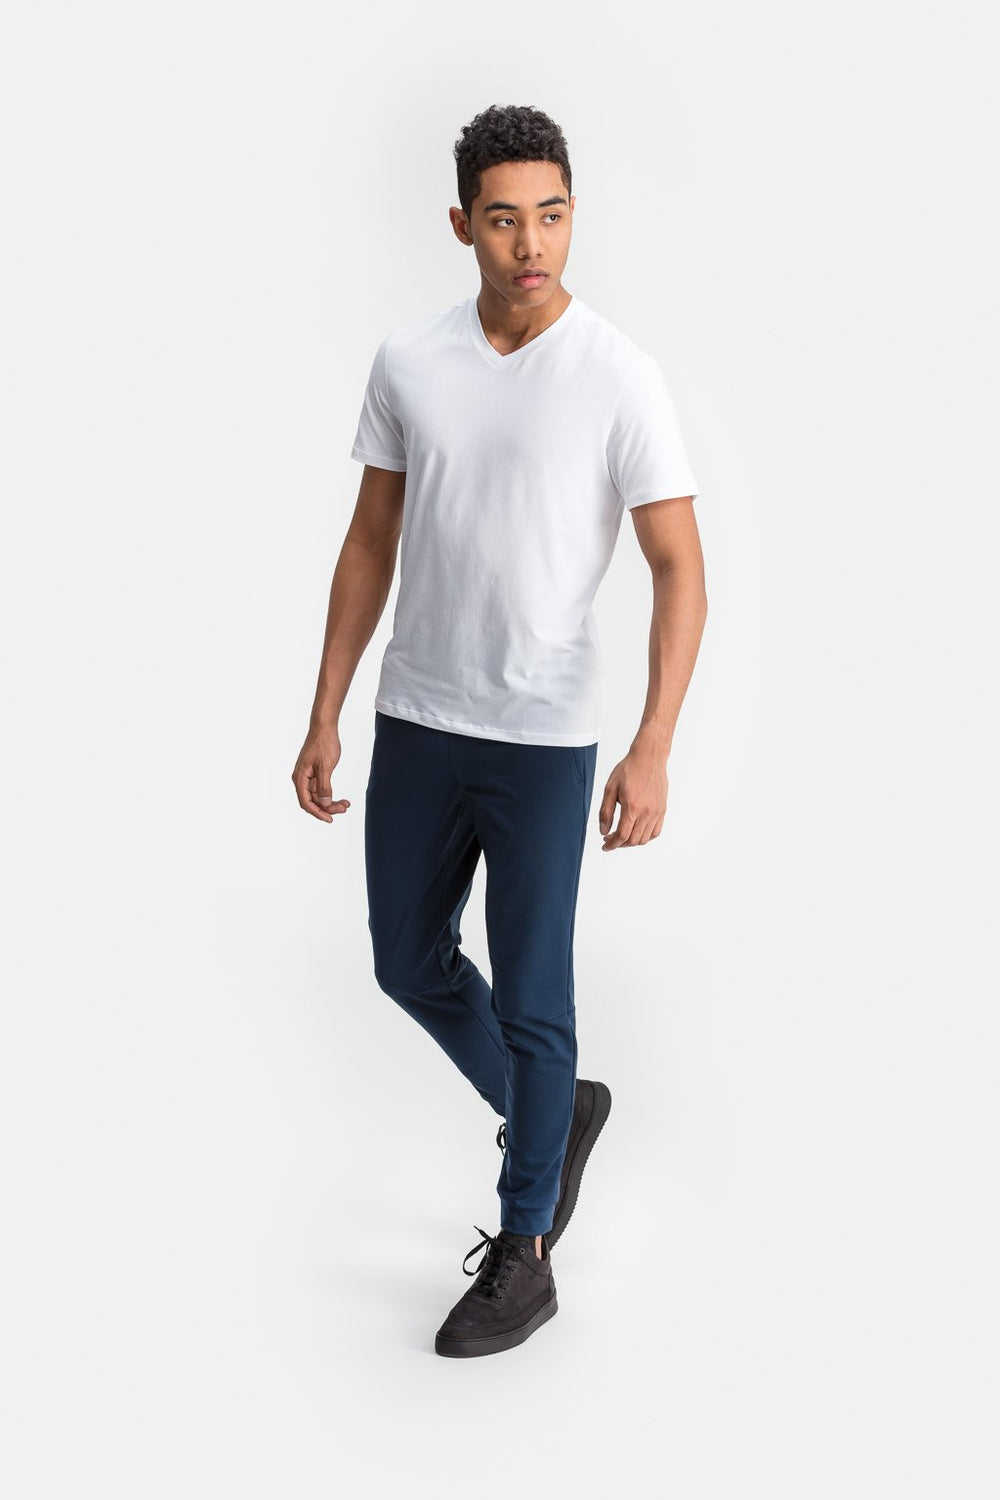 RYU Mens Standard Issue V Neck in White